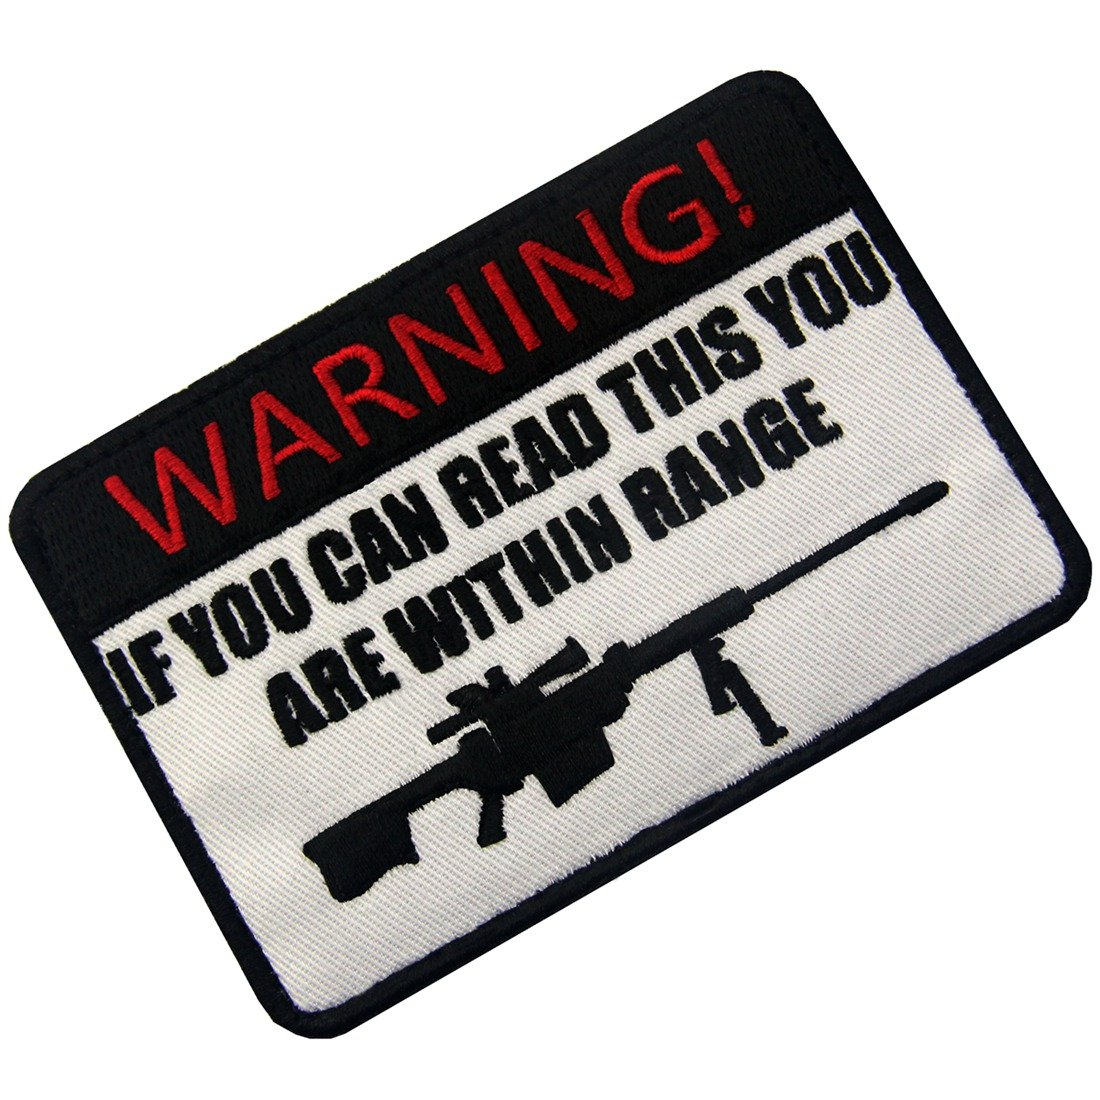 If You Can Read This You Are Within Range Tactical Military Morale Applique Fastener Hook /& Loop Patch